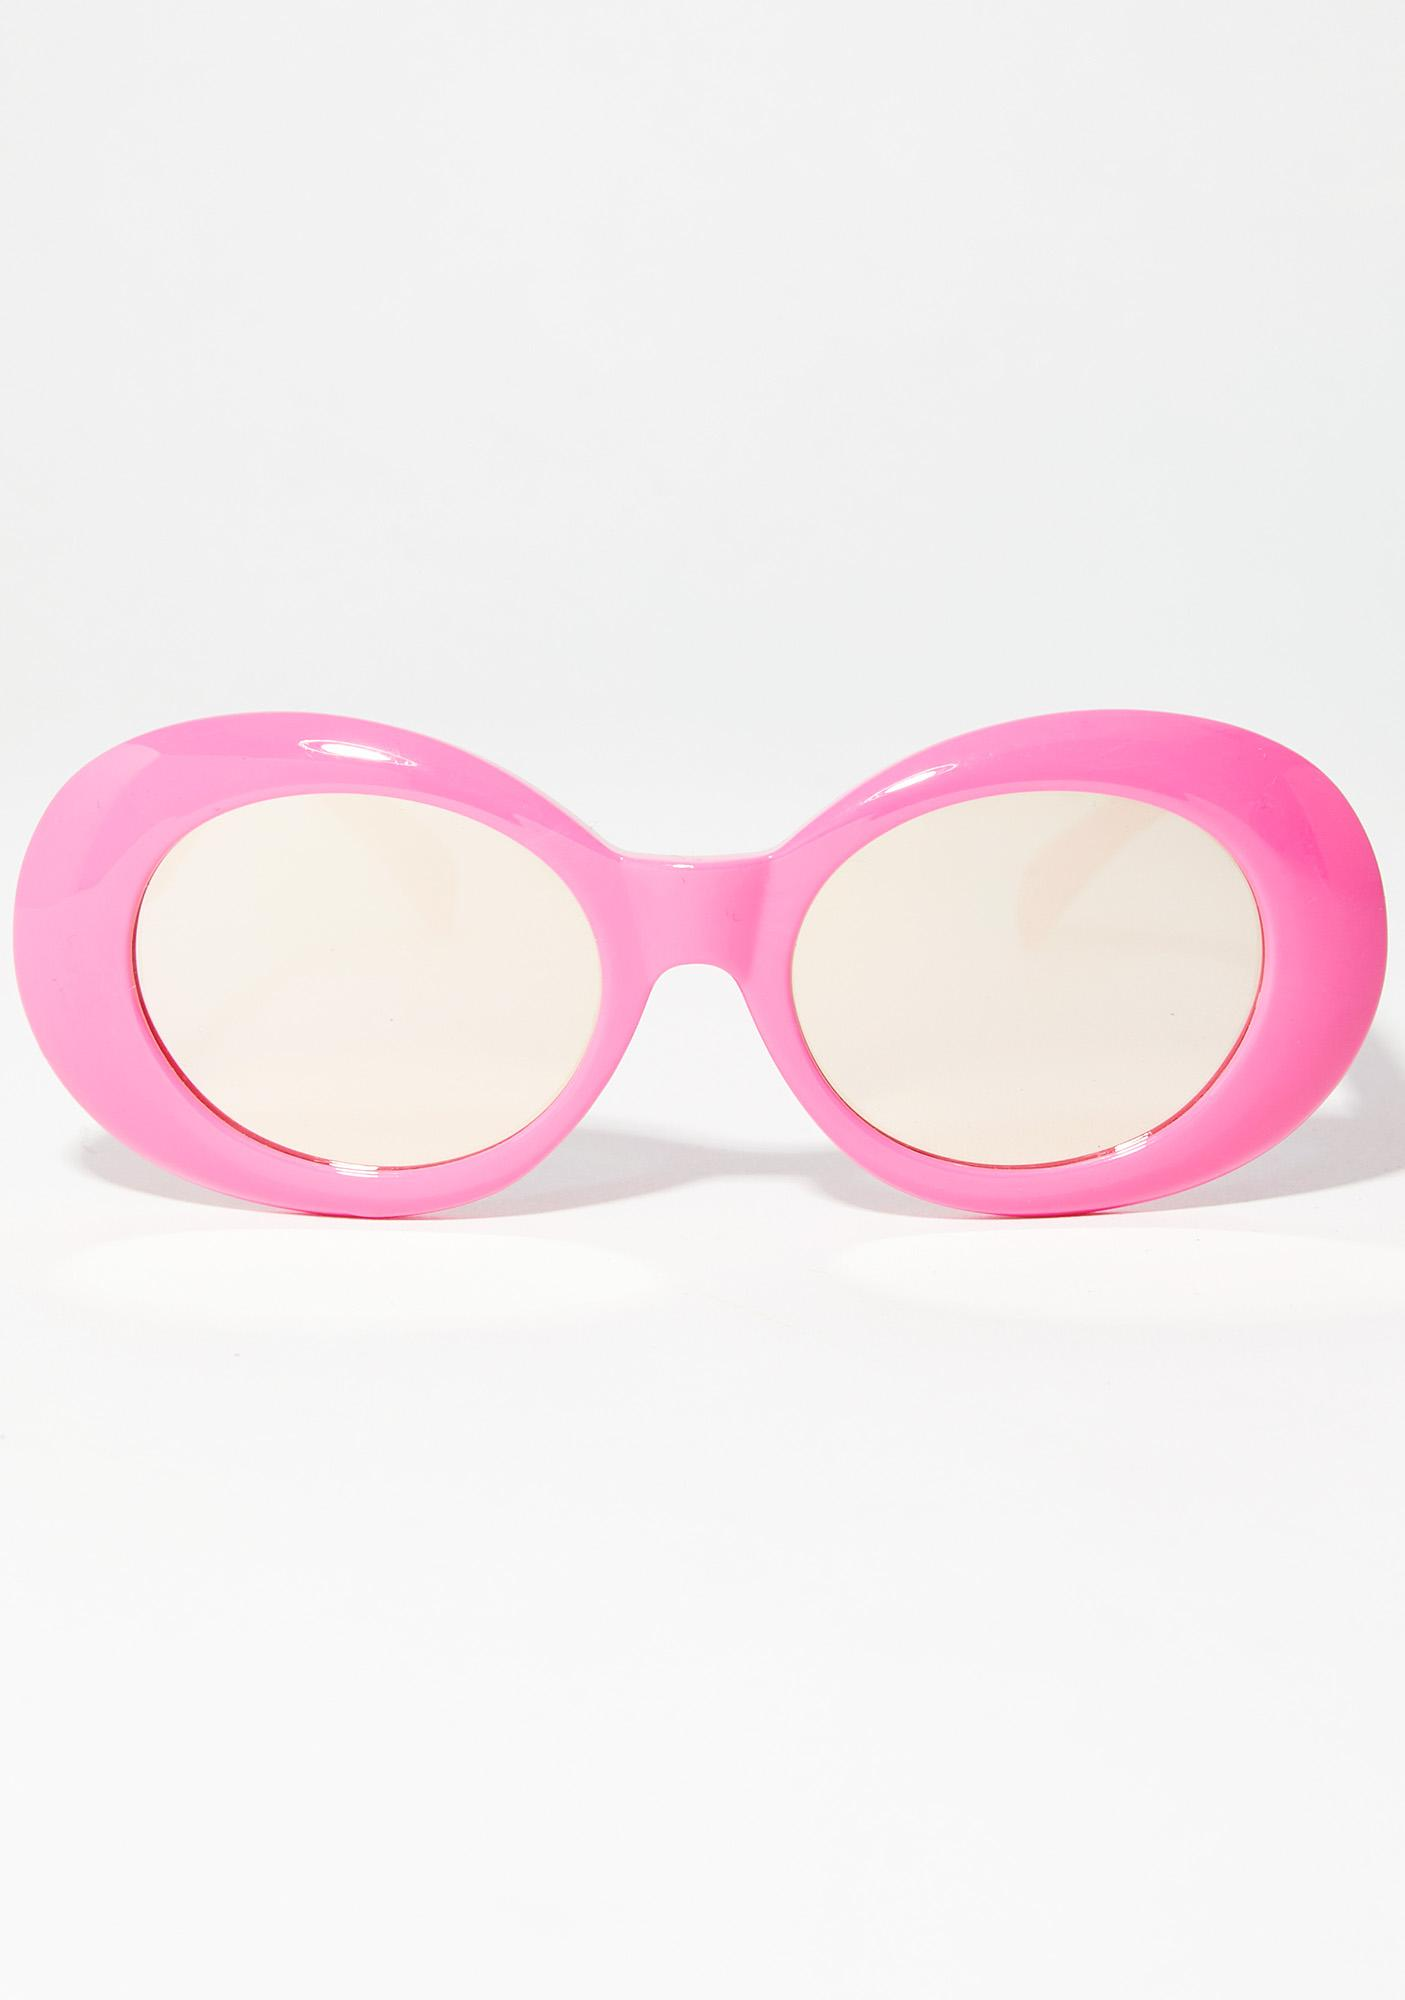 Anti-Square Sunglasses